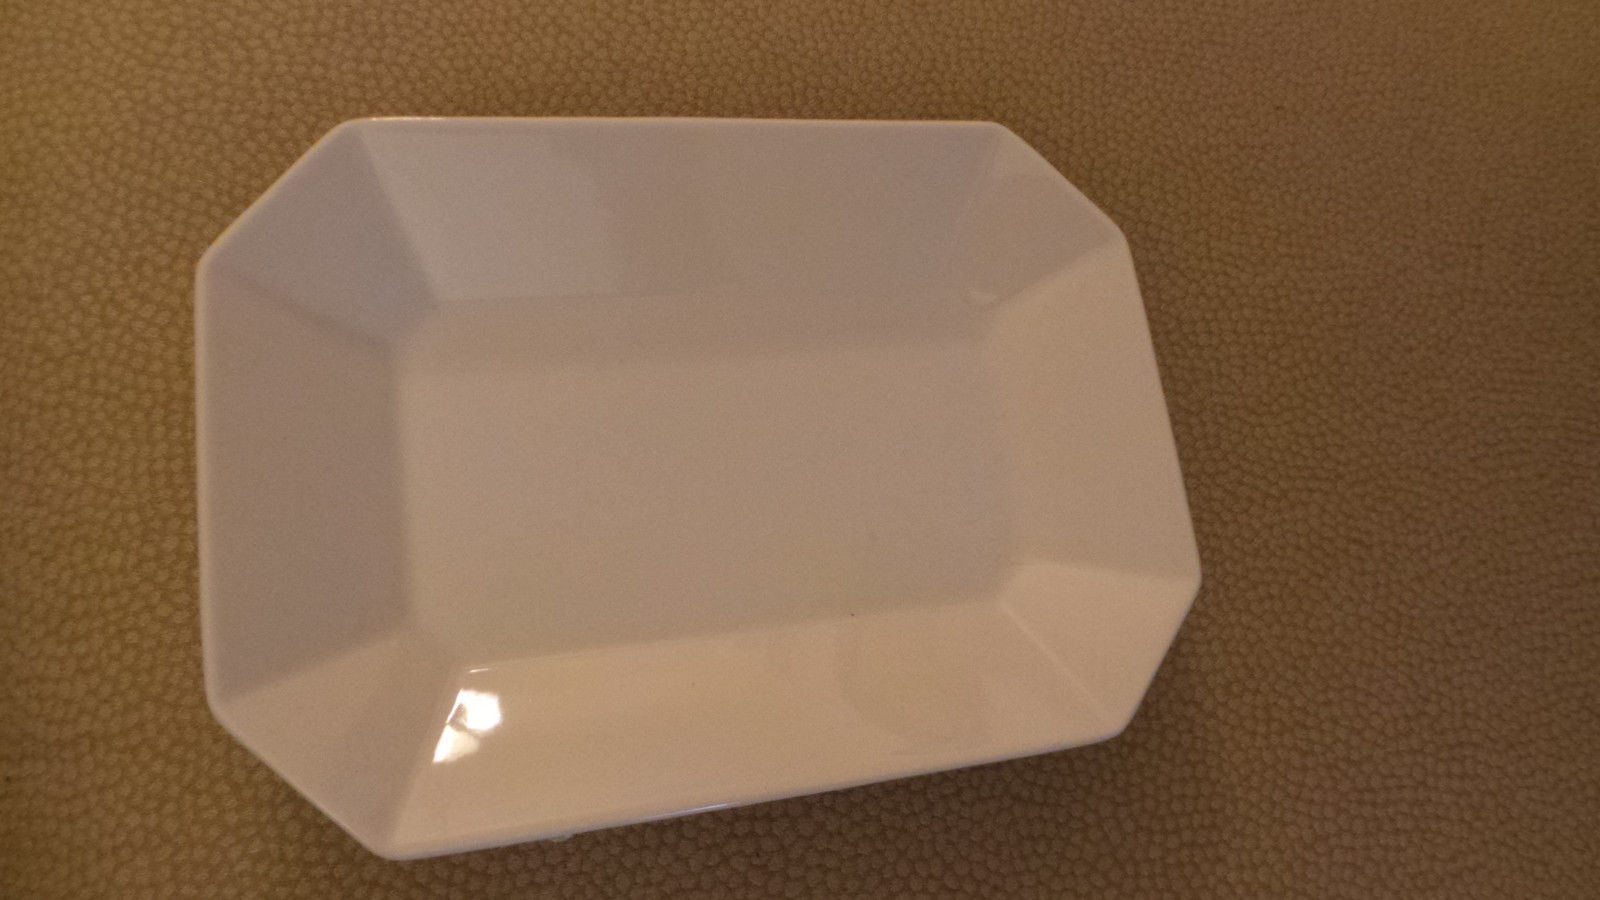 "unused Lenox Entertain 365 Porcelain Lite Bite Plate 6"" x 8 1/4"" x 1 1/4 Exc"